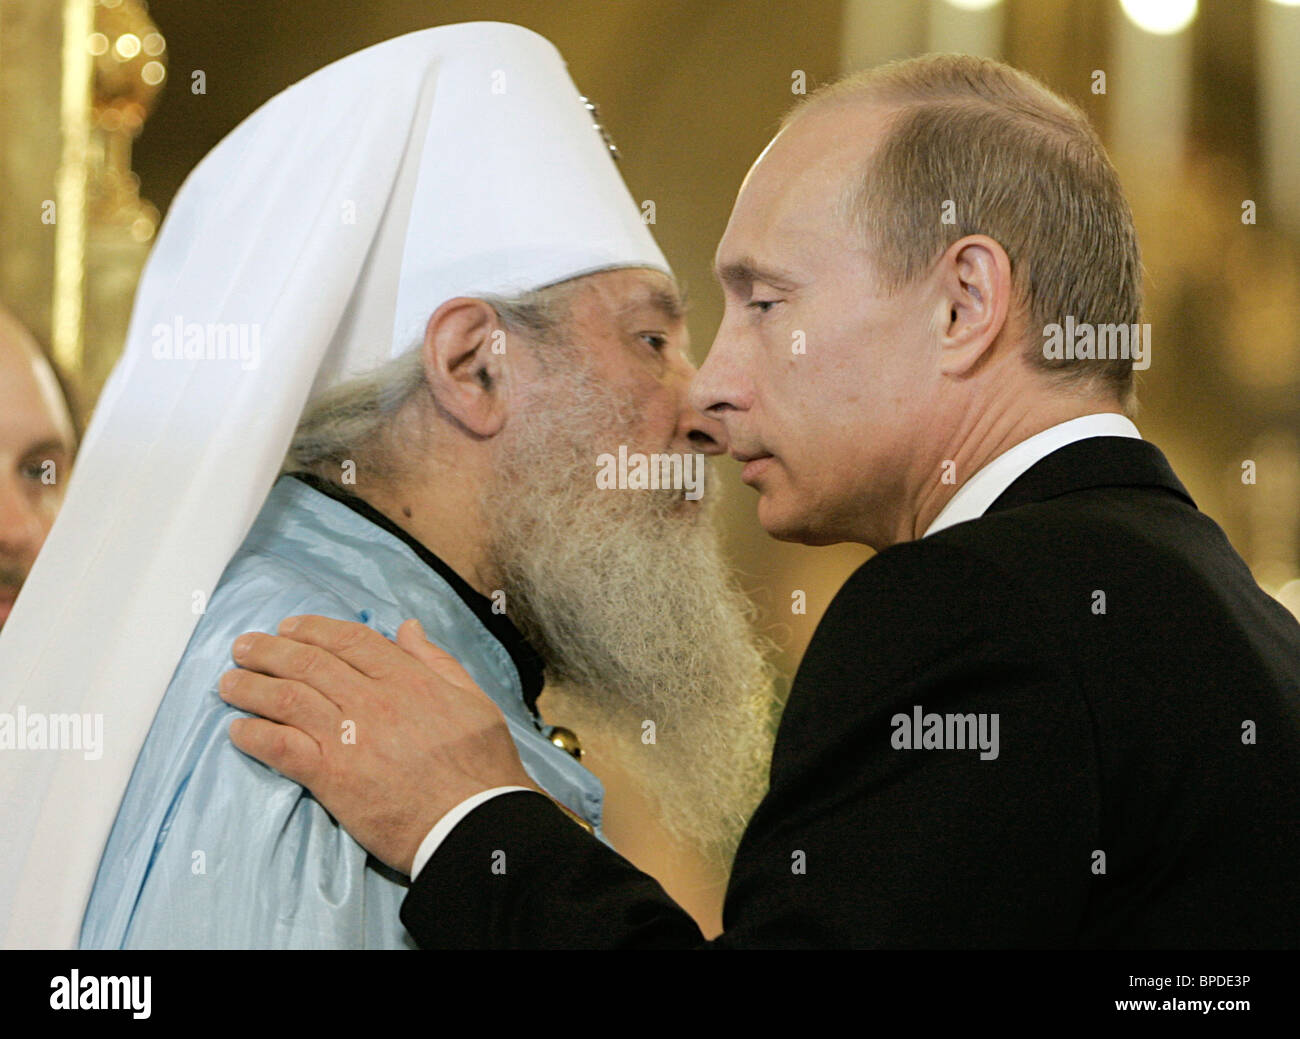 Canonical Communion Act signed in Moscow - Stock Image